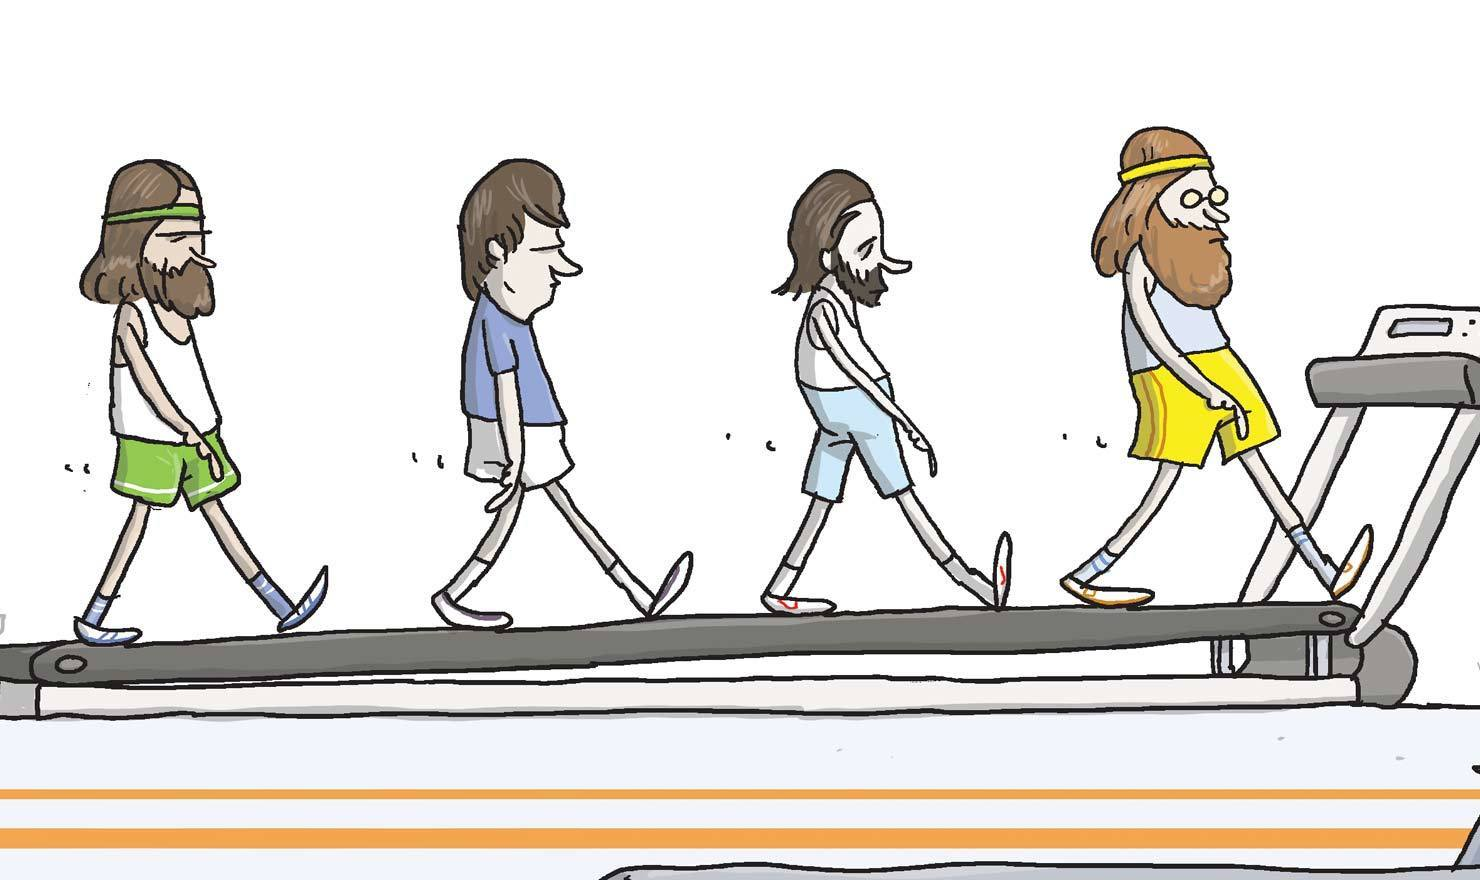 Comics Come Together On Global Beatles Day